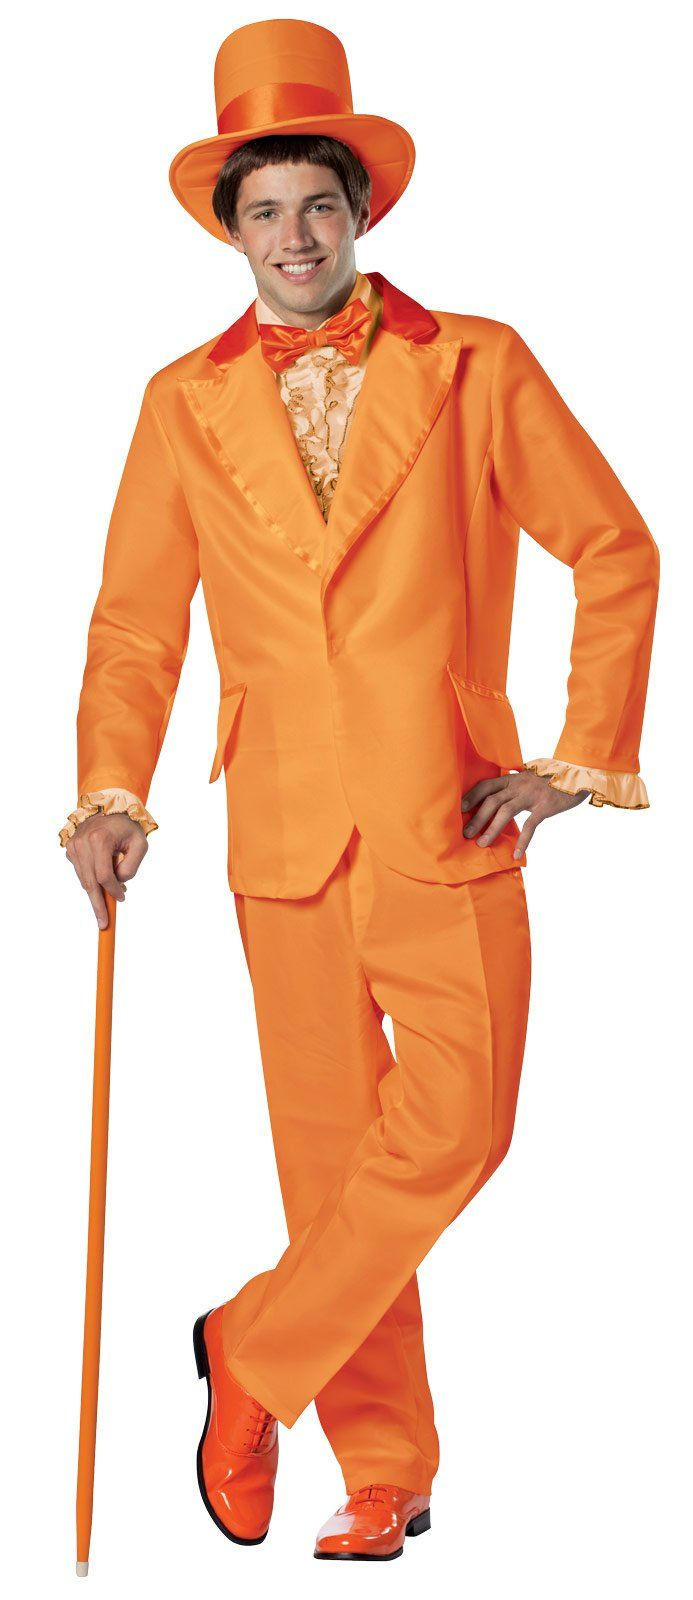 Dumb and Dumber Lloyd Orange Tuxedo Adult Costume from Buycostumes.com